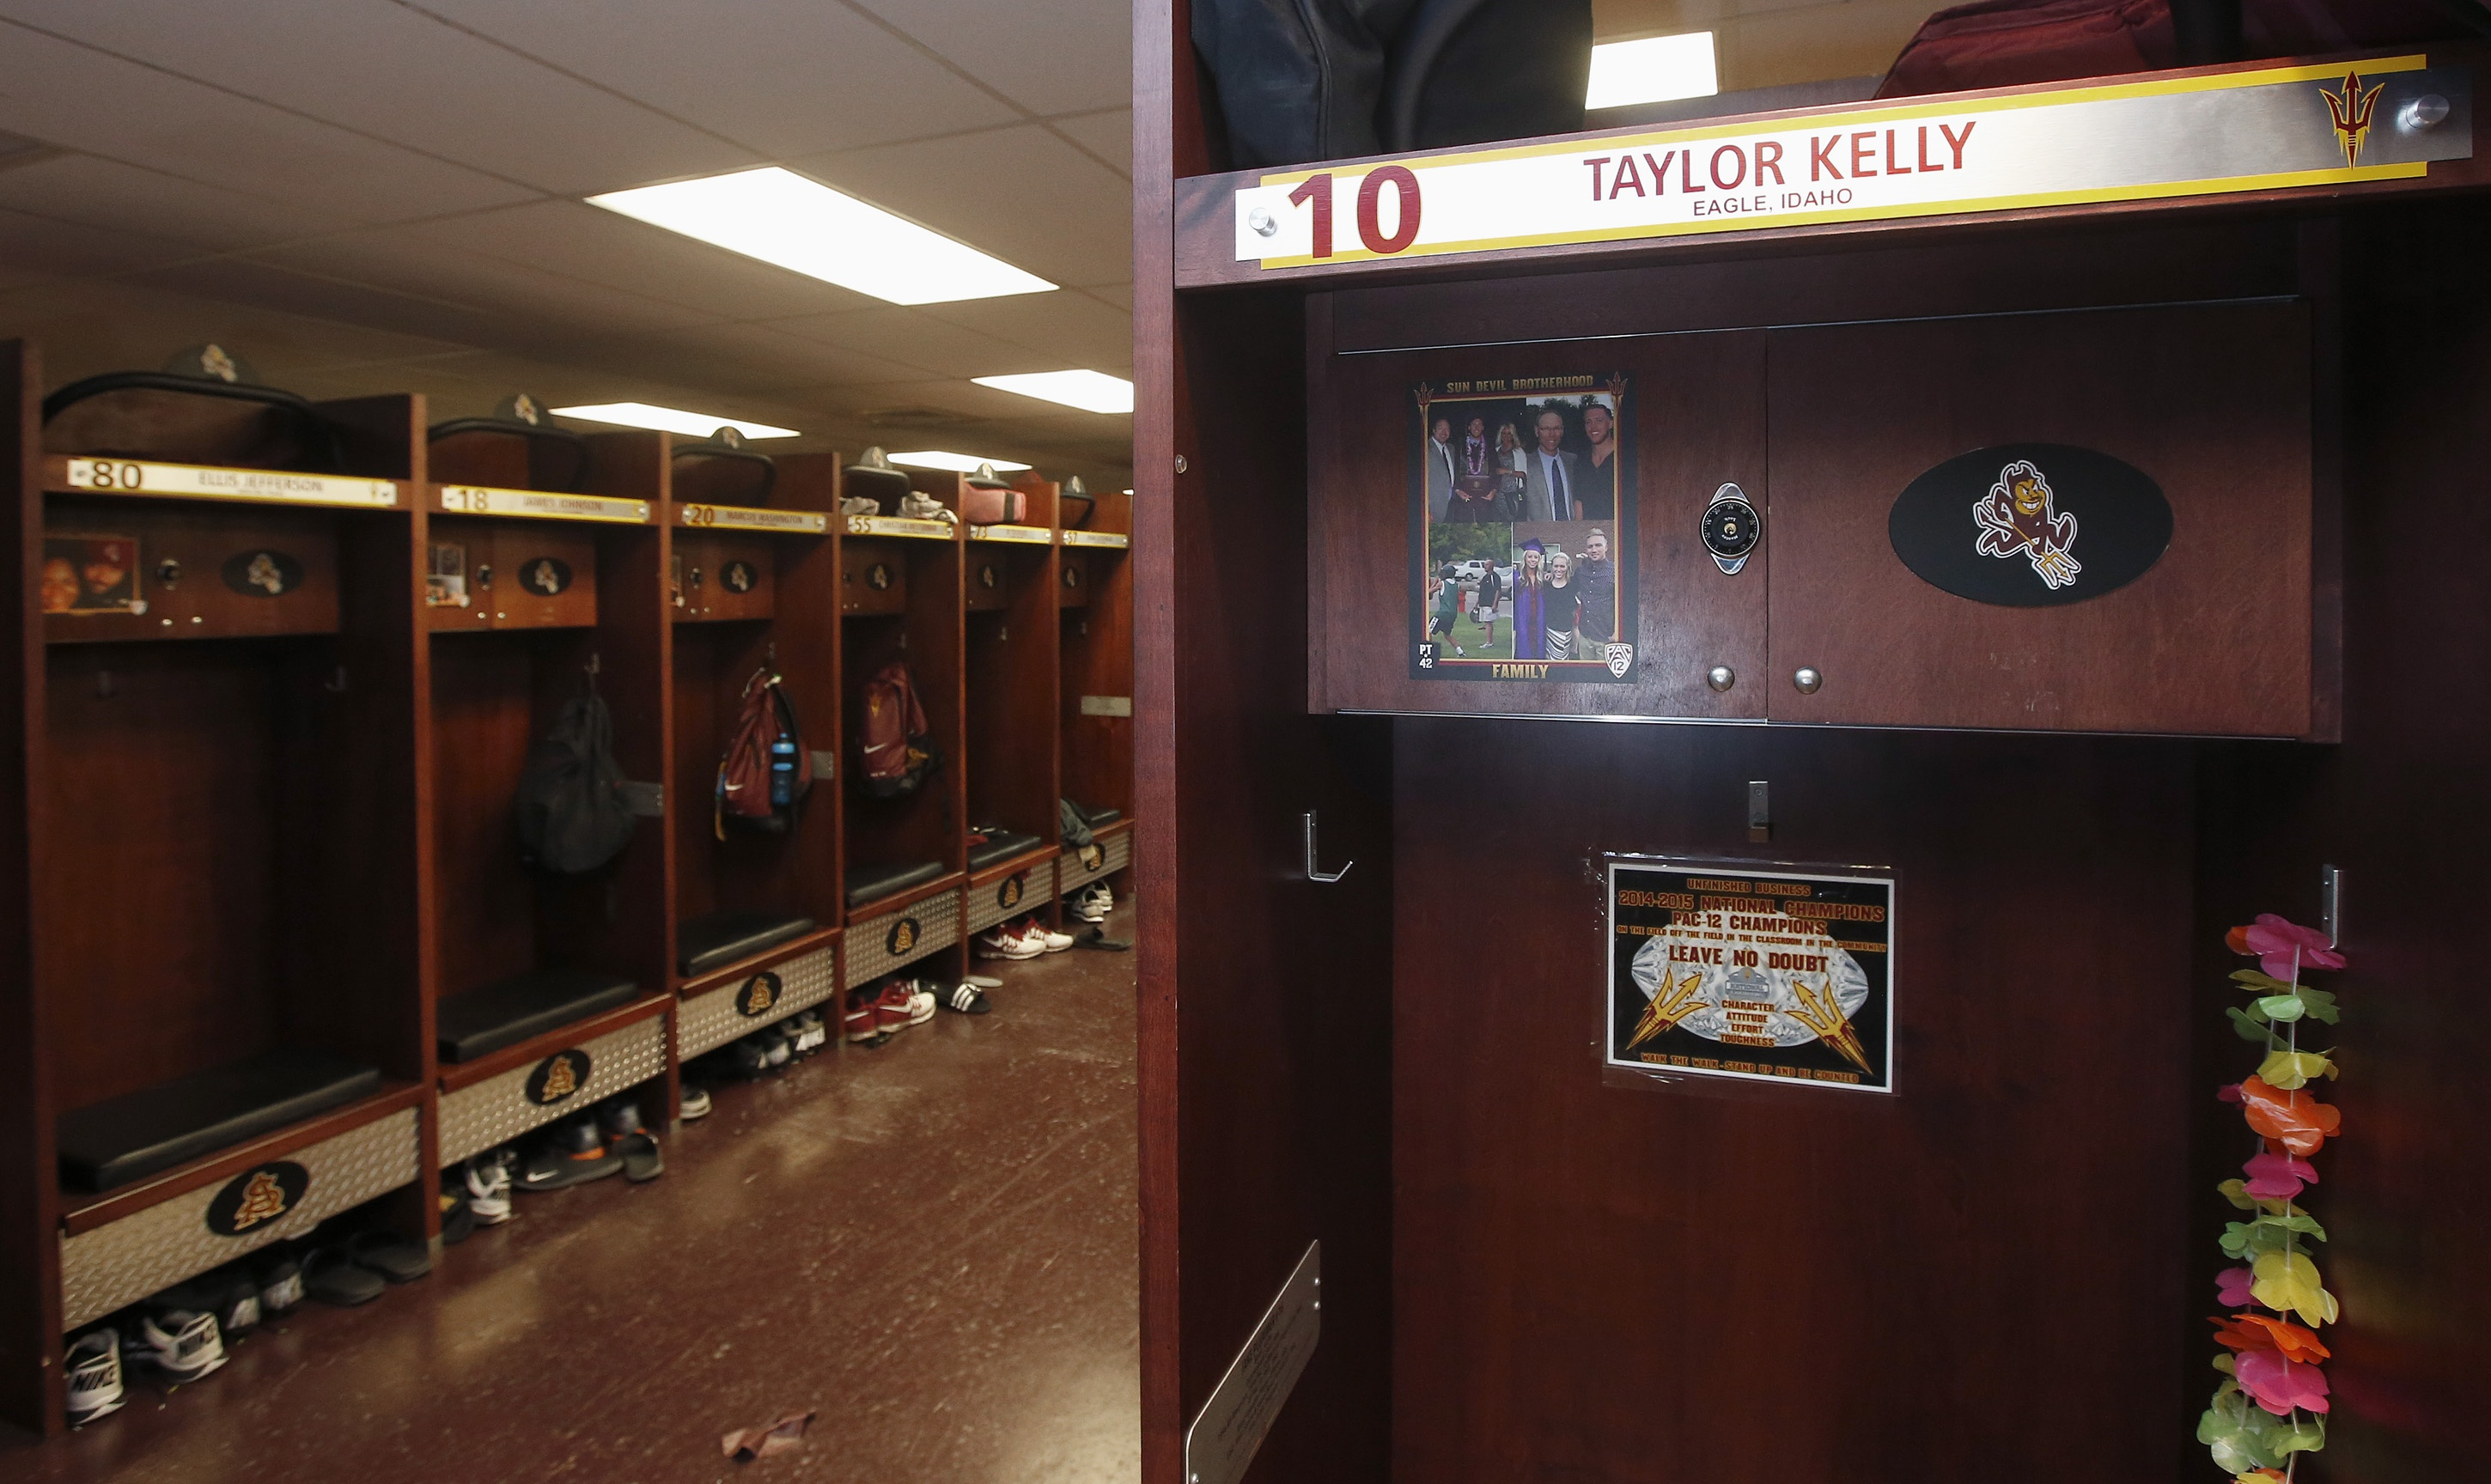 Photos spur Sun Devils to play harder